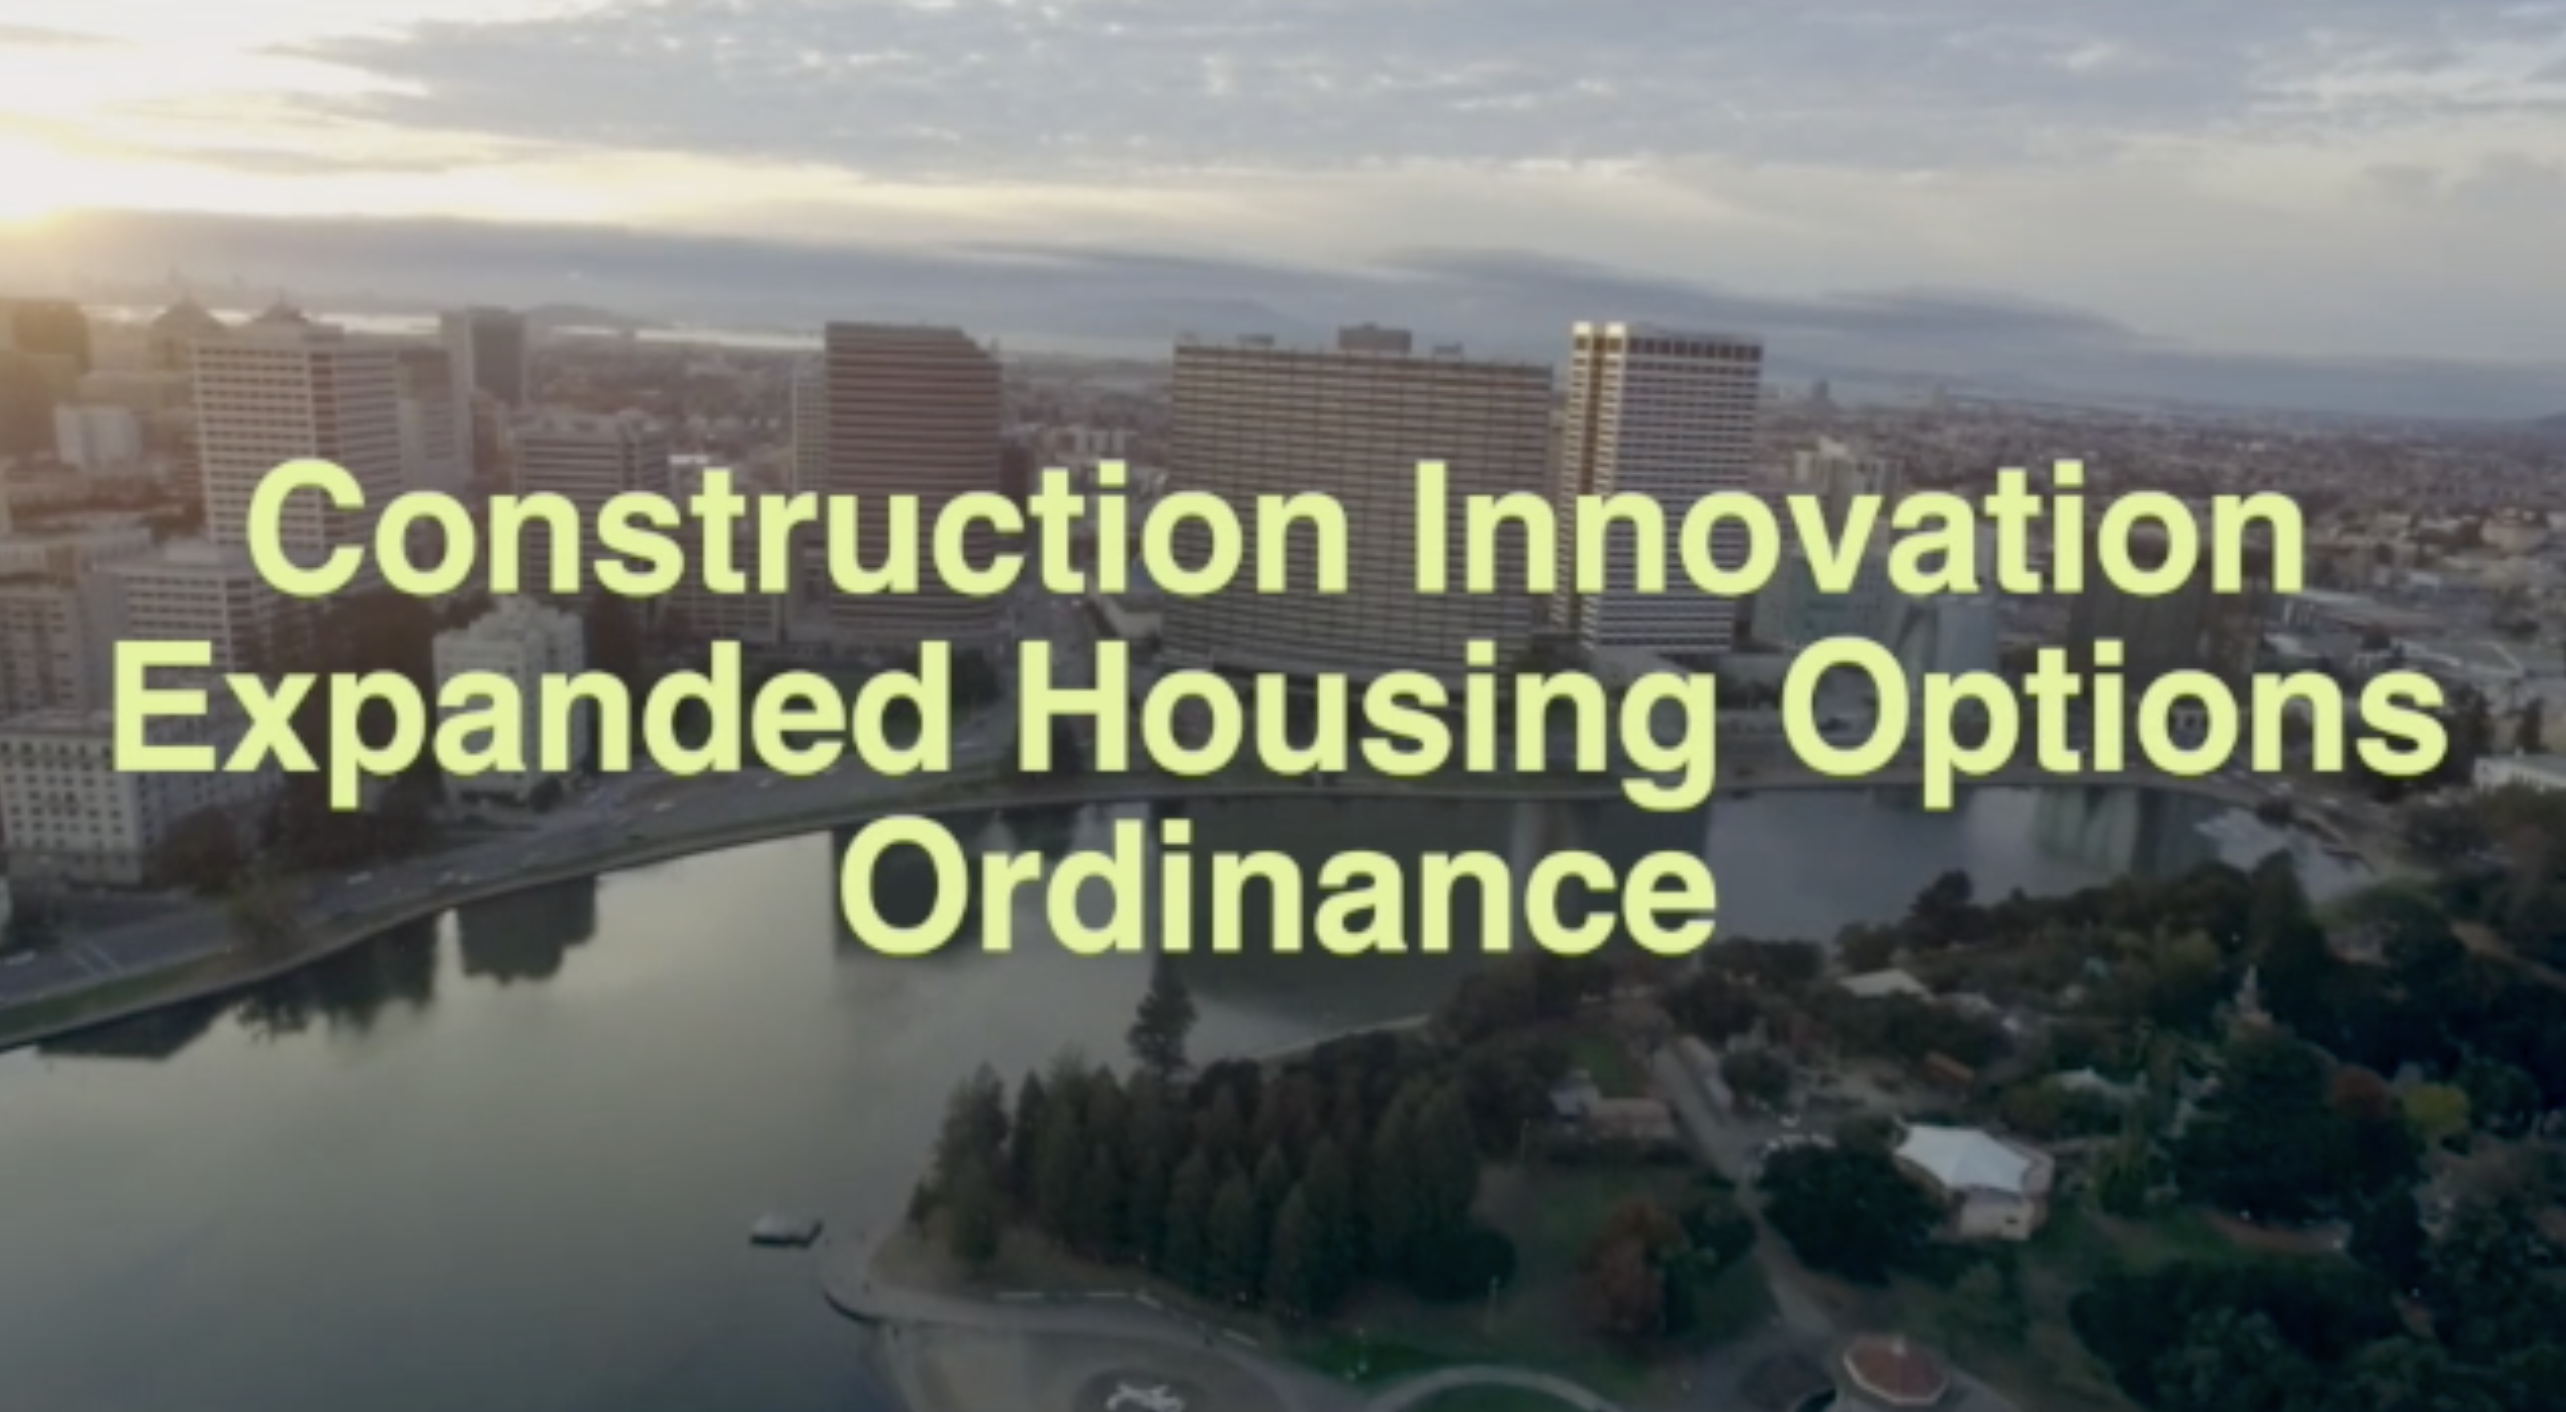 Construction Innovation Expanded Housing Options Ordinance